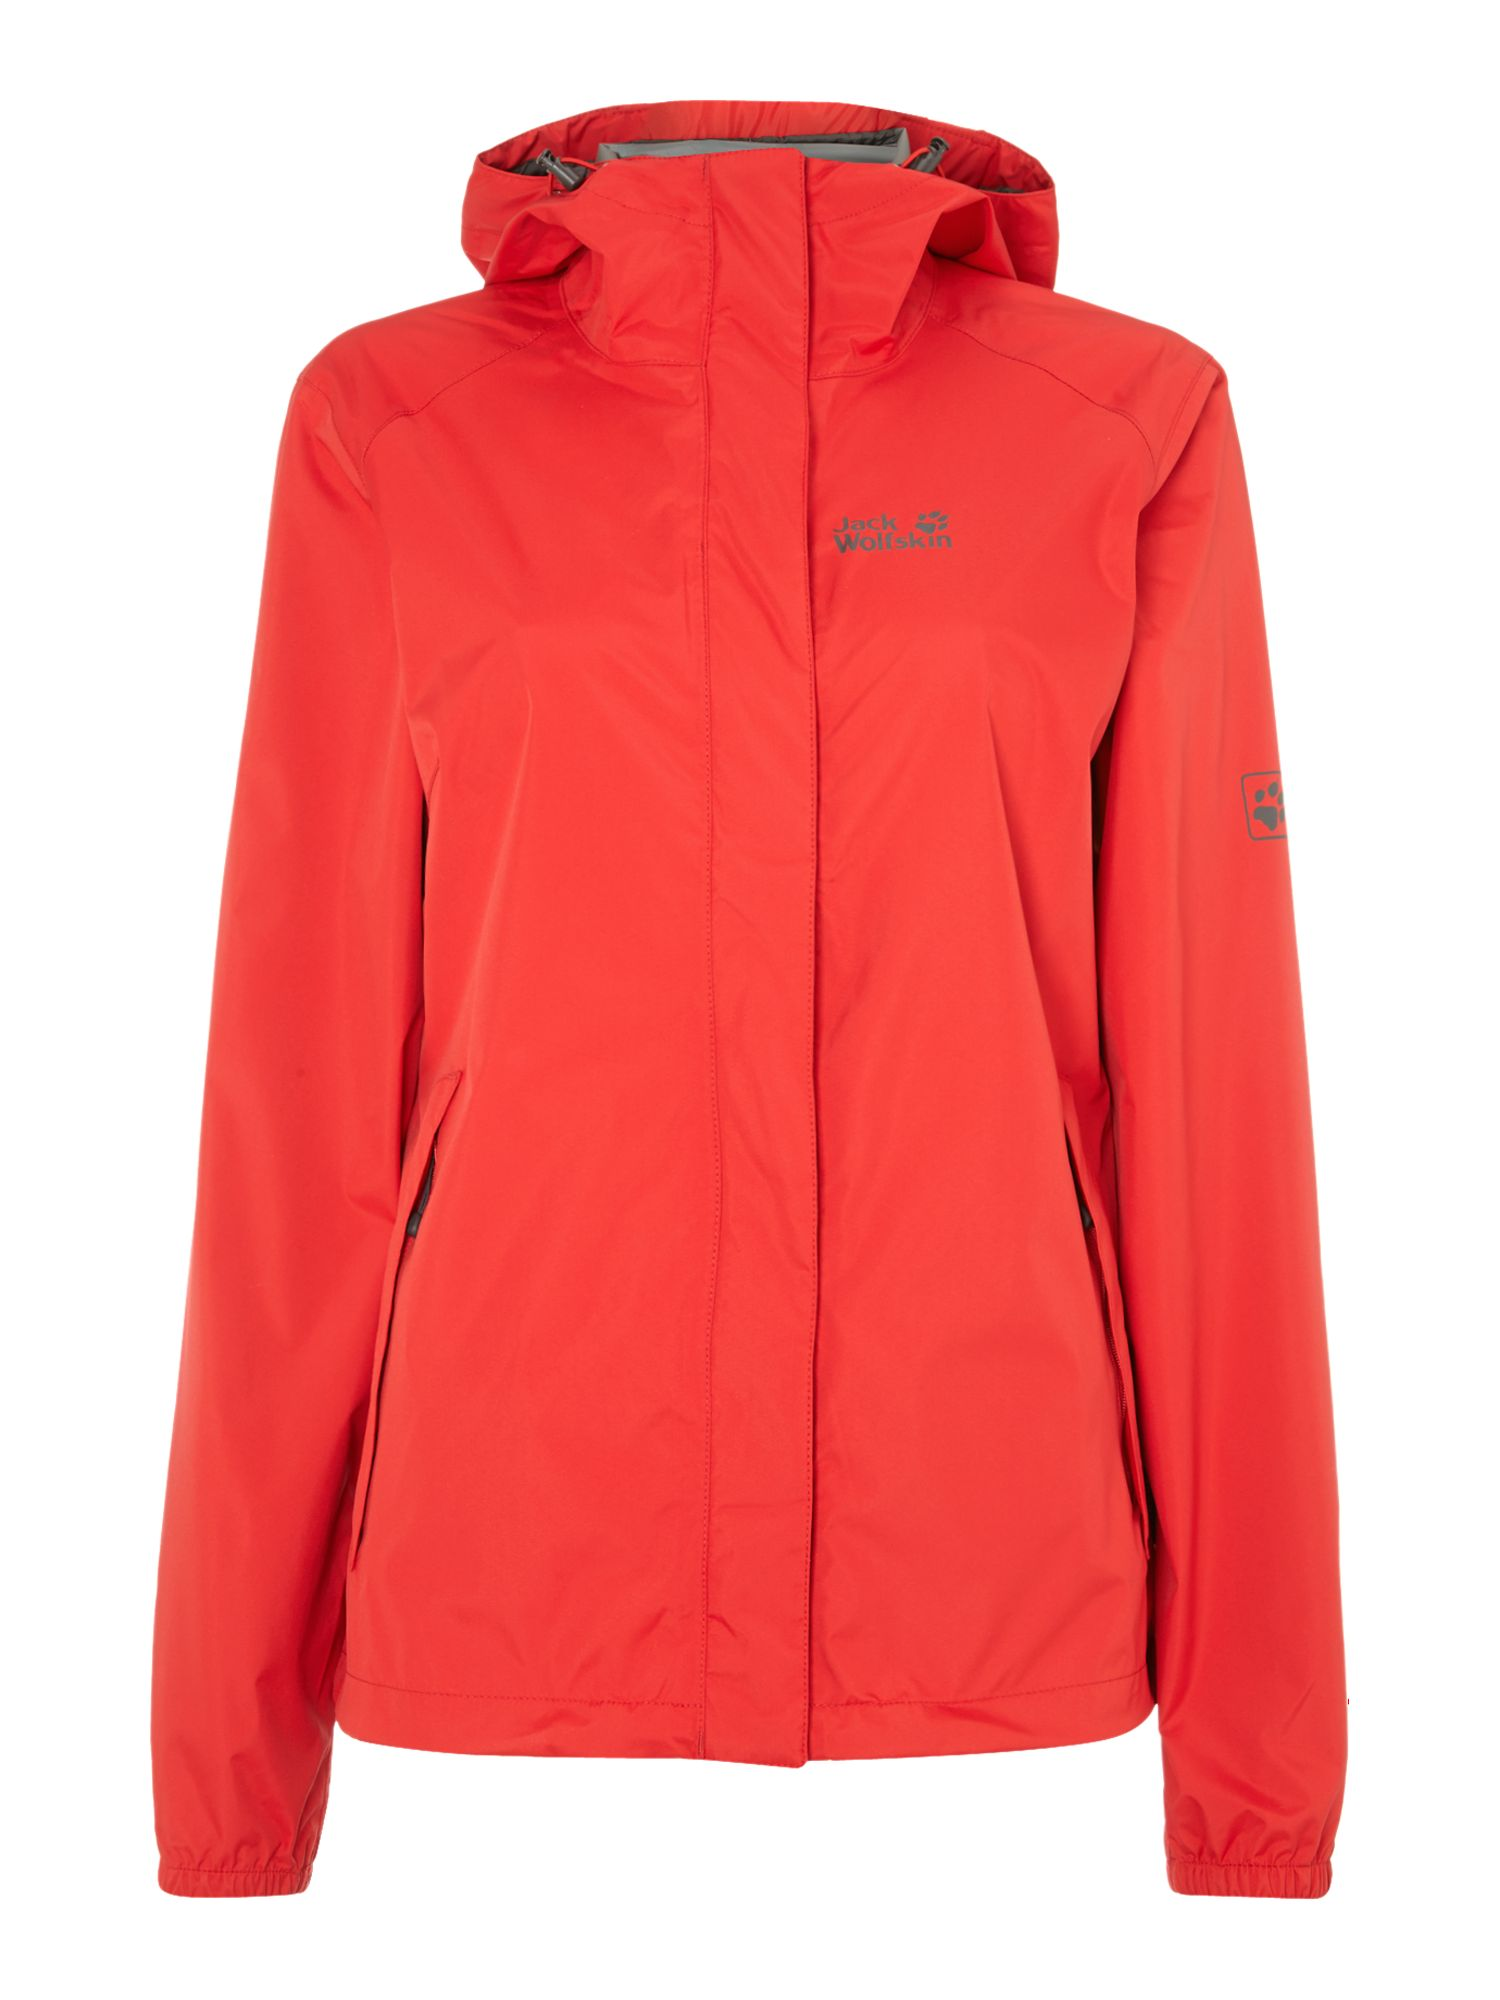 Cloudburst pack away jacket with hood